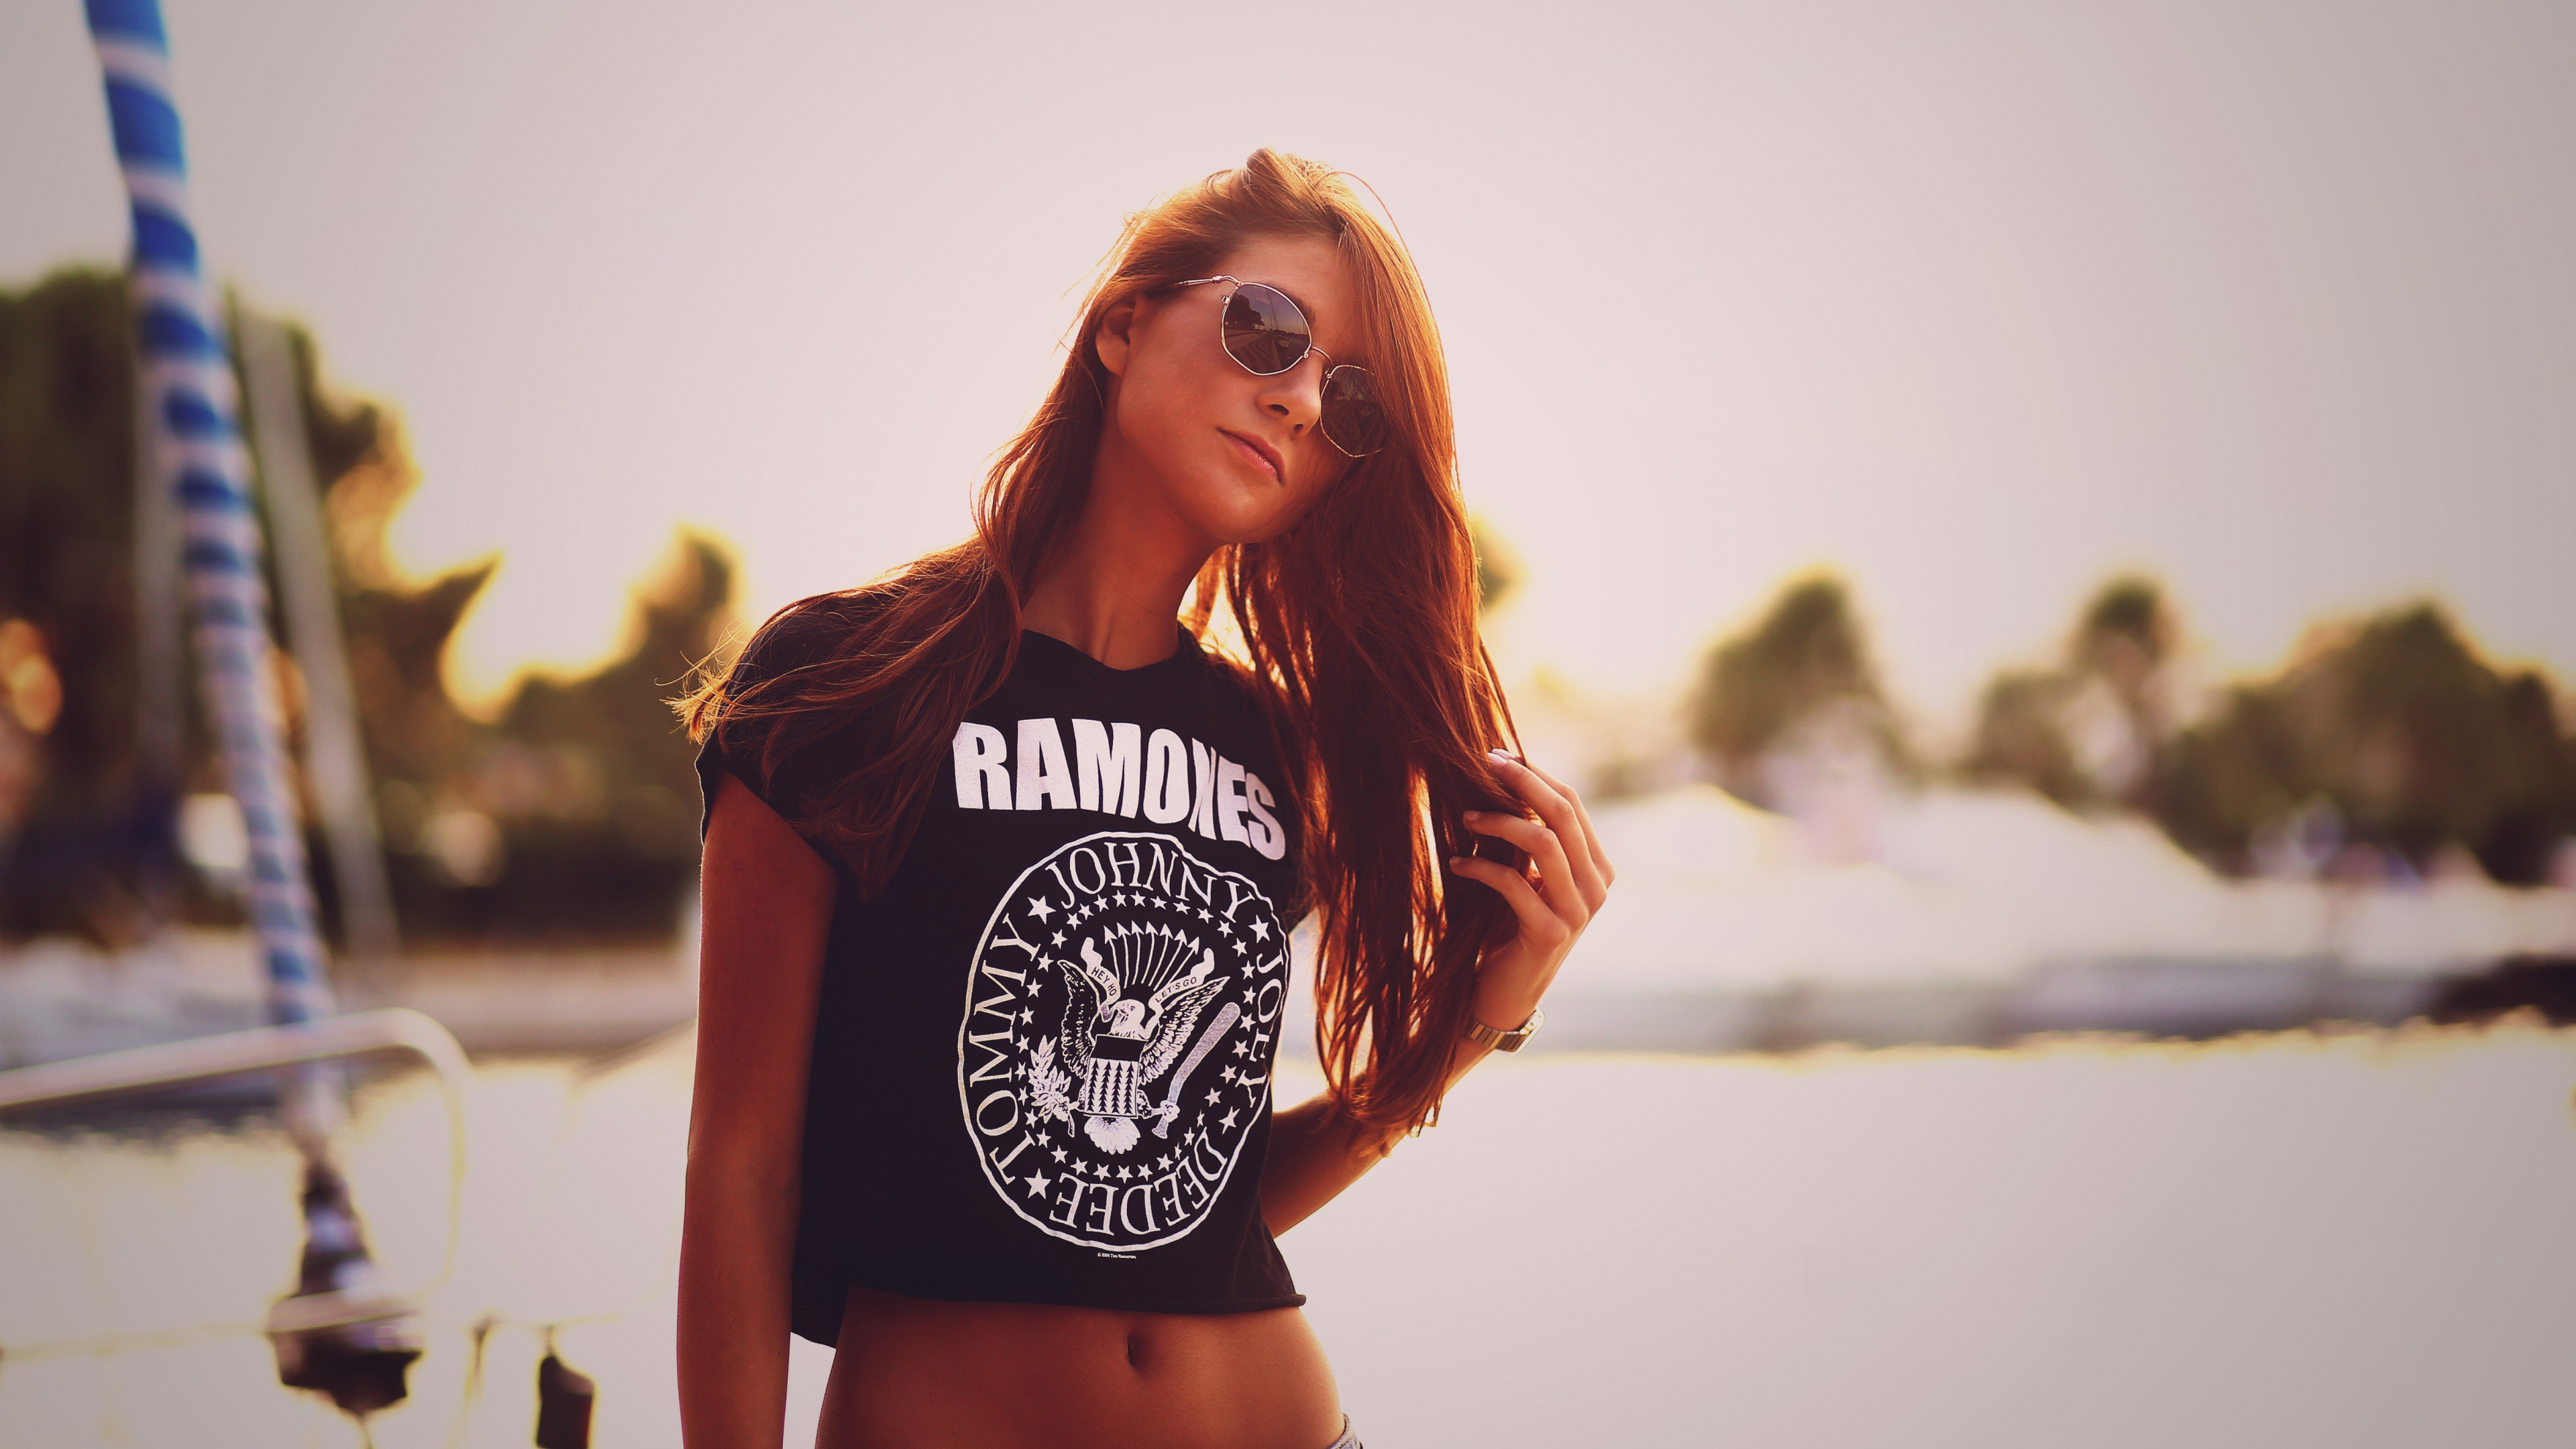 Girl Wallpaper Hd For Mobile Free Download Women Ramones Wallpapers Hd Desktop And Mobile Backgrounds